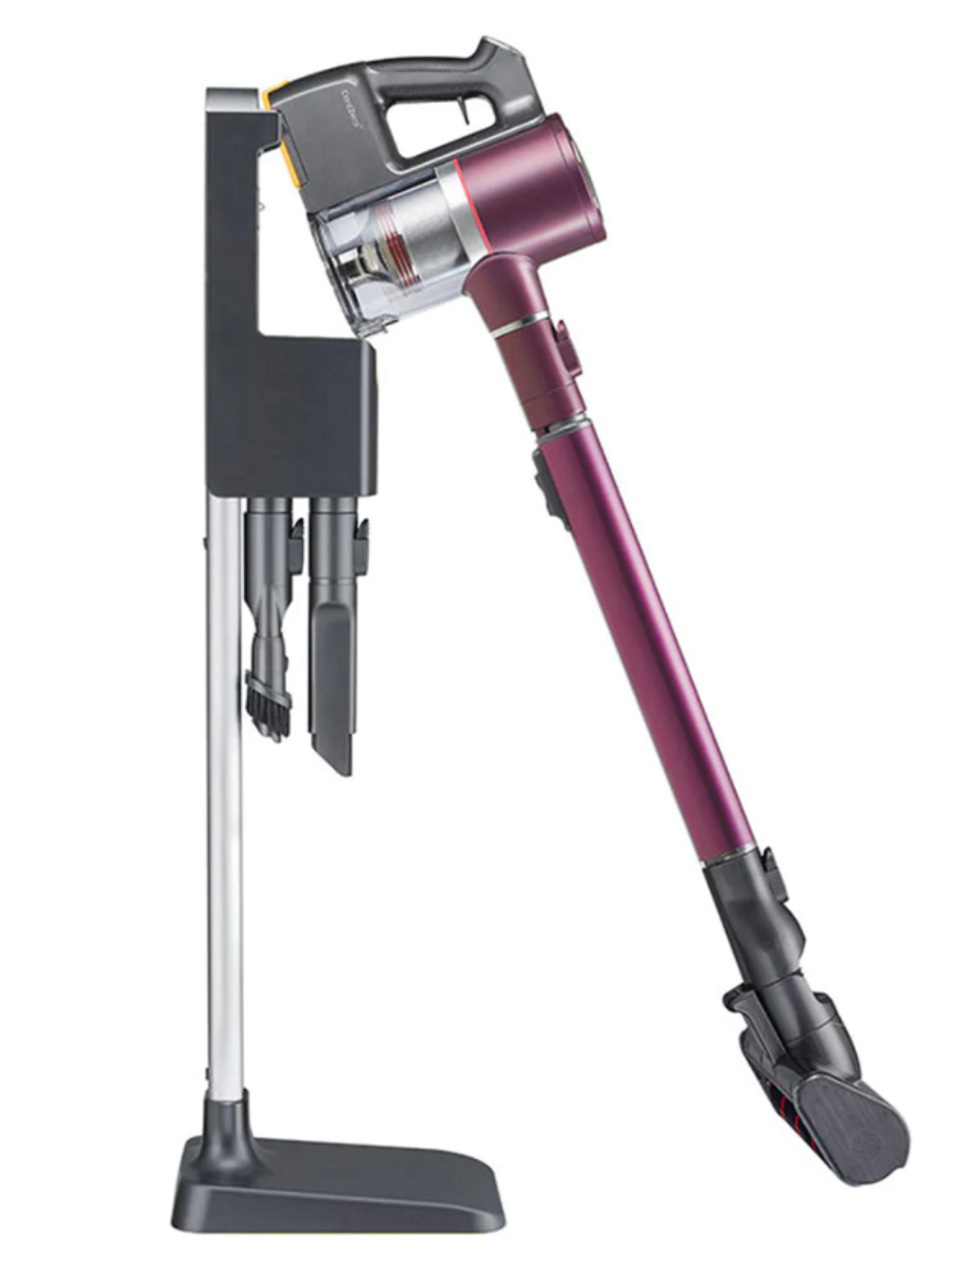 LG A9NEOMASTER Powerful Cordless Handstick with AEROSCIENCE™